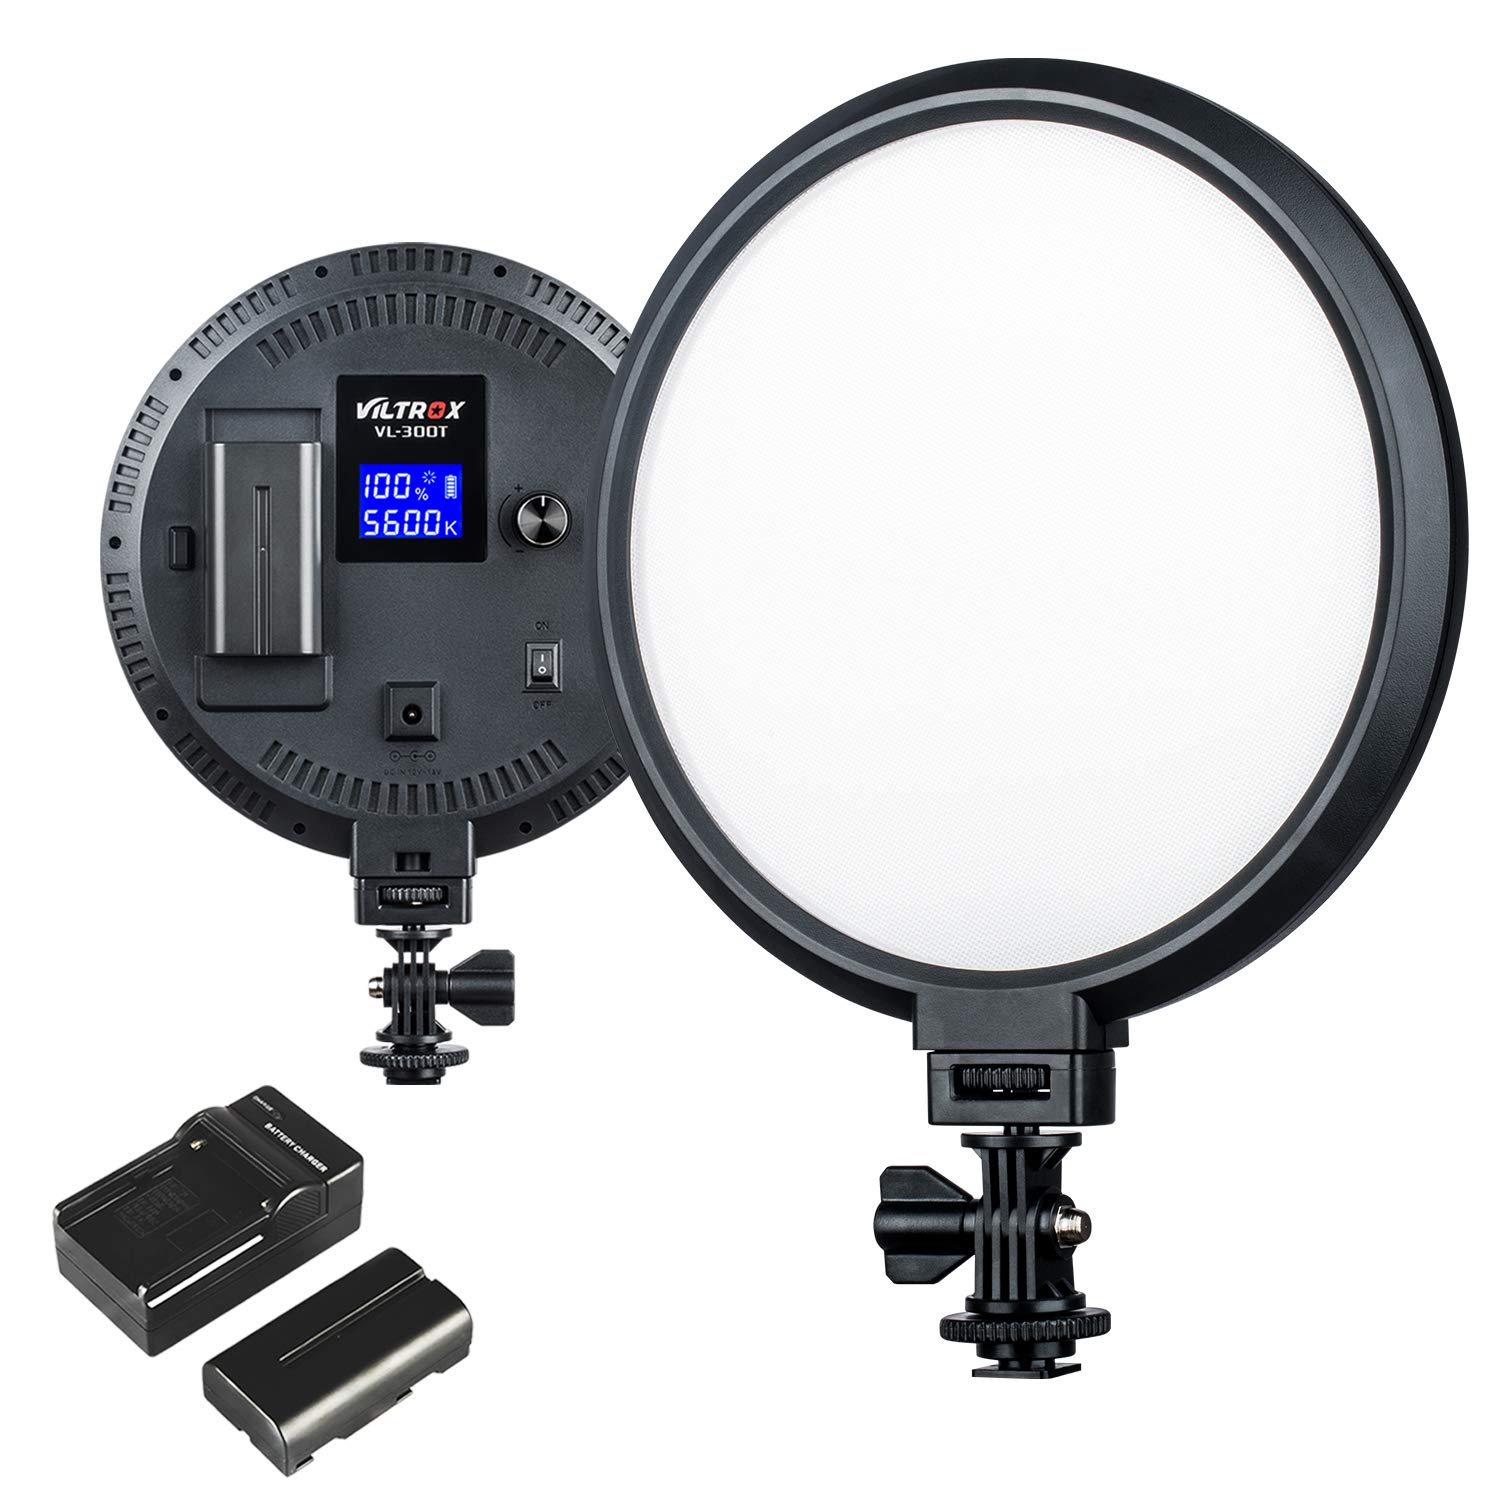 VILTROX VL-300T Bi-Color LED Camera Video Light, Dimmable Edge Flapjack Photo Light 8-Inch Round for Digital DSLR Camera and Camcorder with CRI 95+, 3300K~5600K, Battery and Charger Included